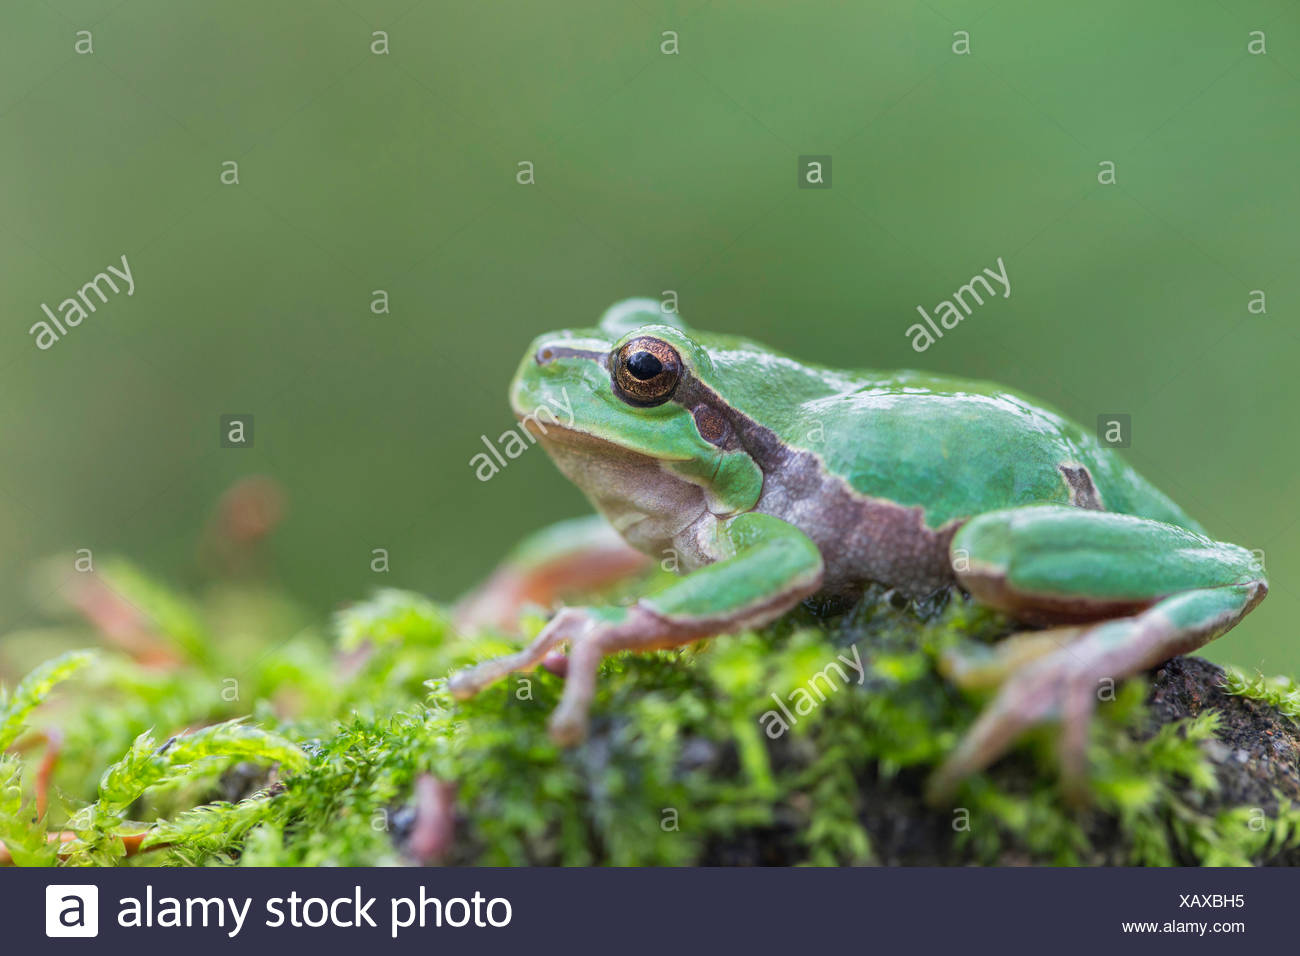 European treefrog, common treefrog, Central European treefrog (Hyla arborea), sitting on a moss cushion, side view, Germany, Bavaria - Stock Image